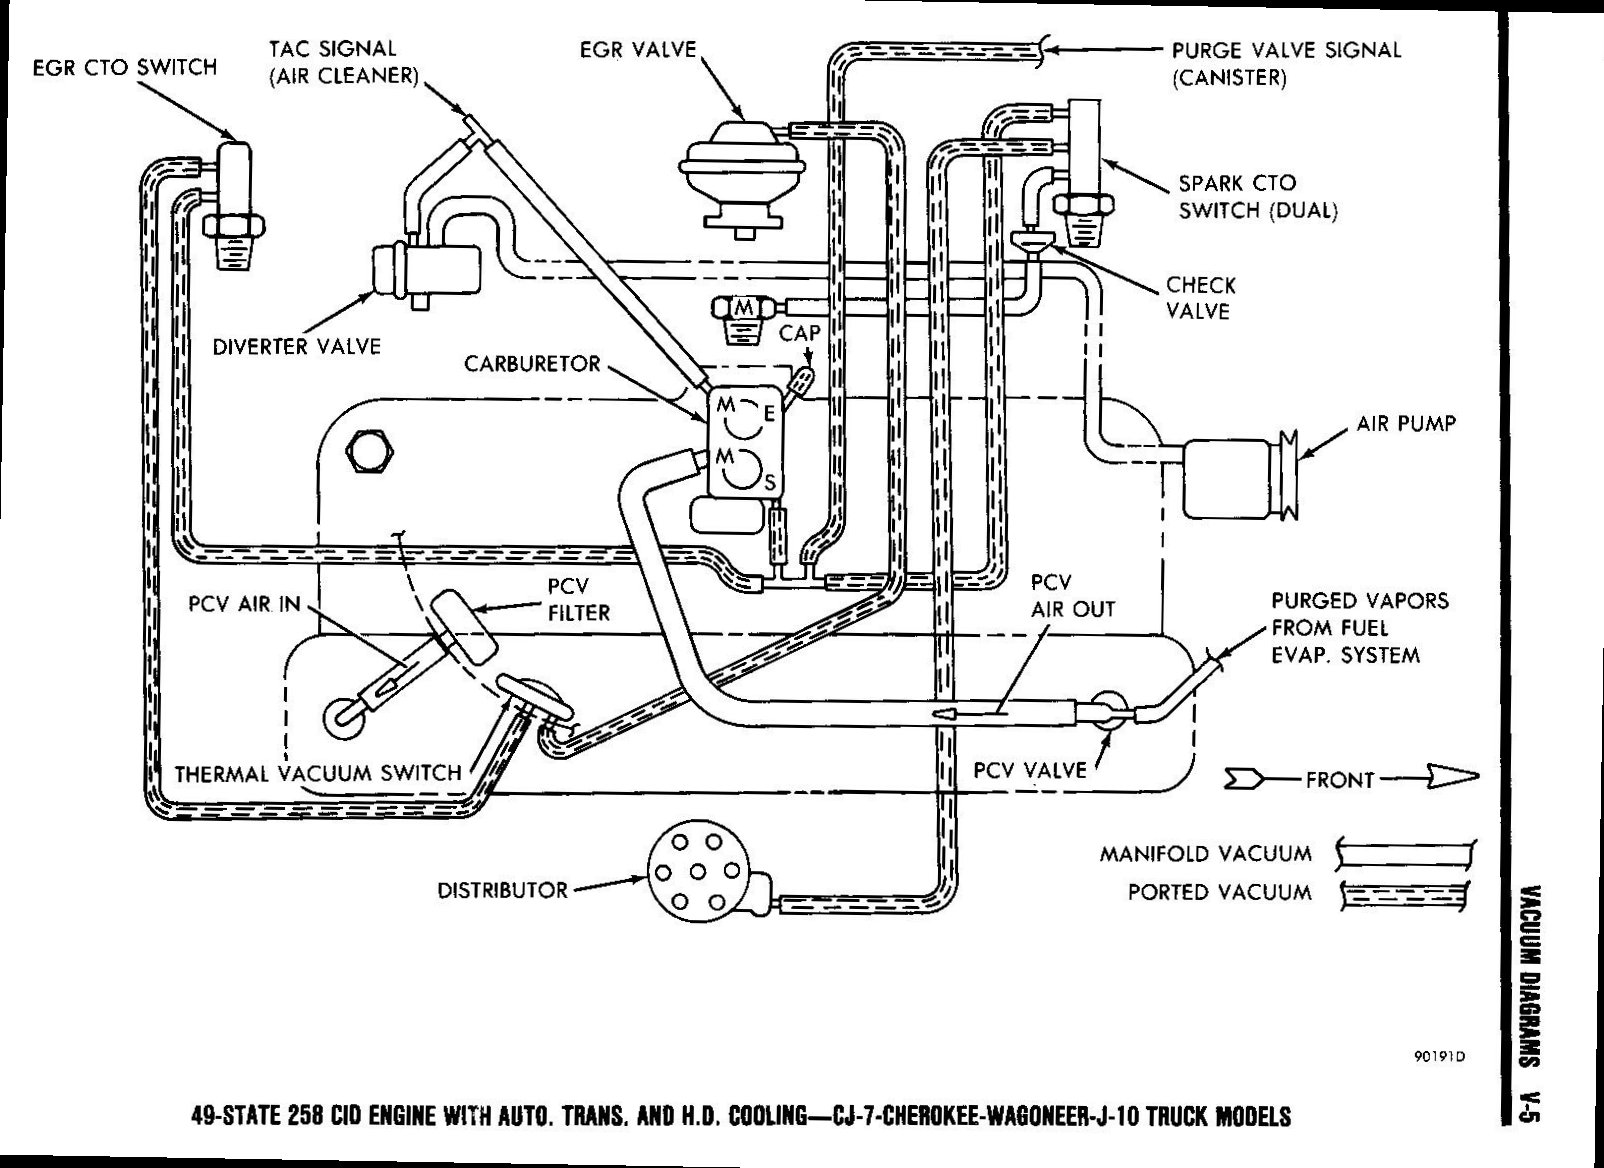 79 FSJ 6cyl_Vacuum 2 tom 'oljeep' collins fsj vacuum layout page 1978 Corvette Wiring Diagram at webbmarketing.co